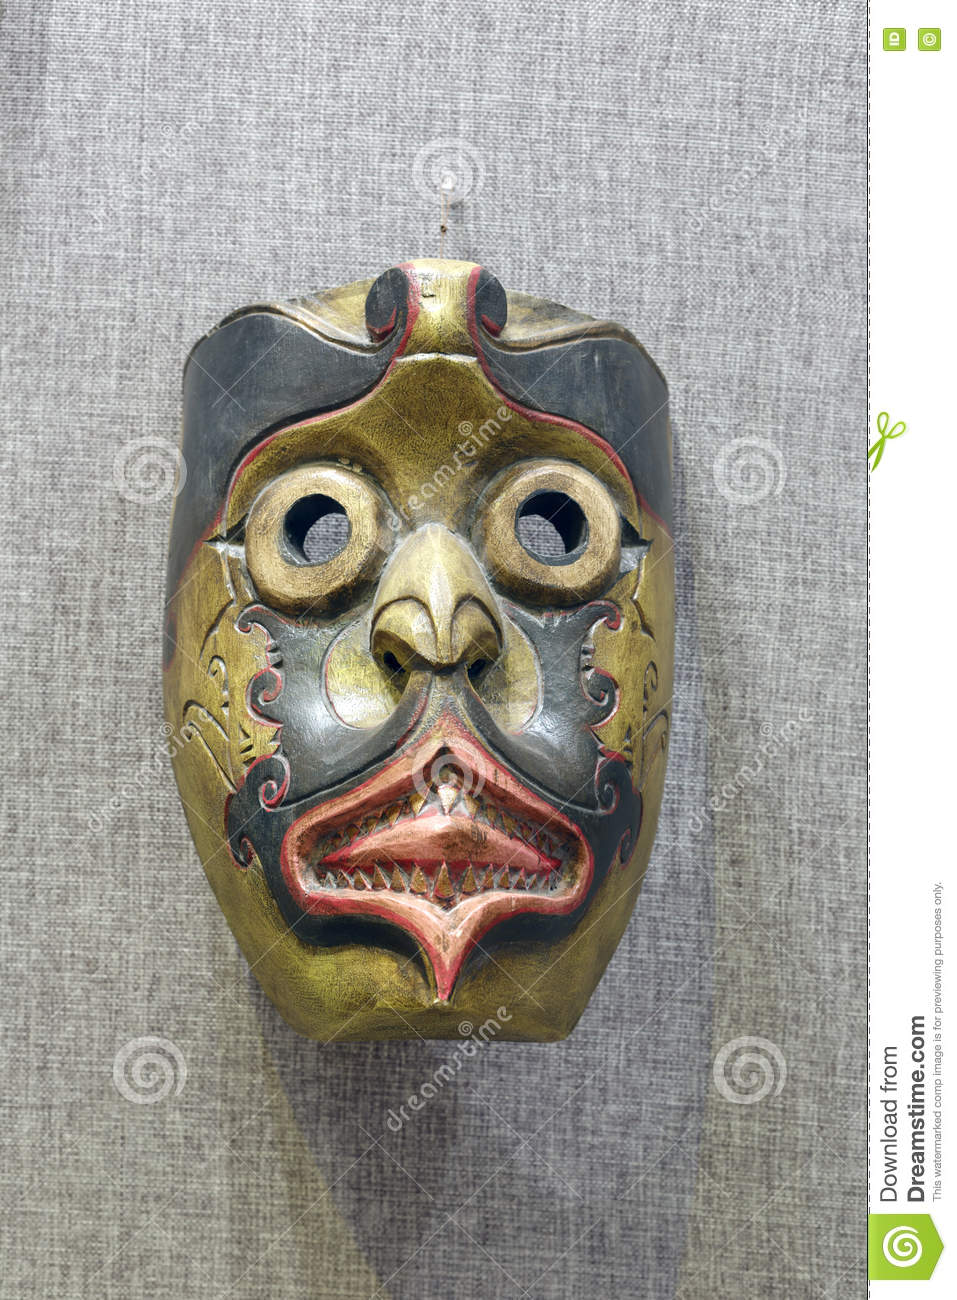 Oriental bird face mask stock photo  Image of meaning - 76129390